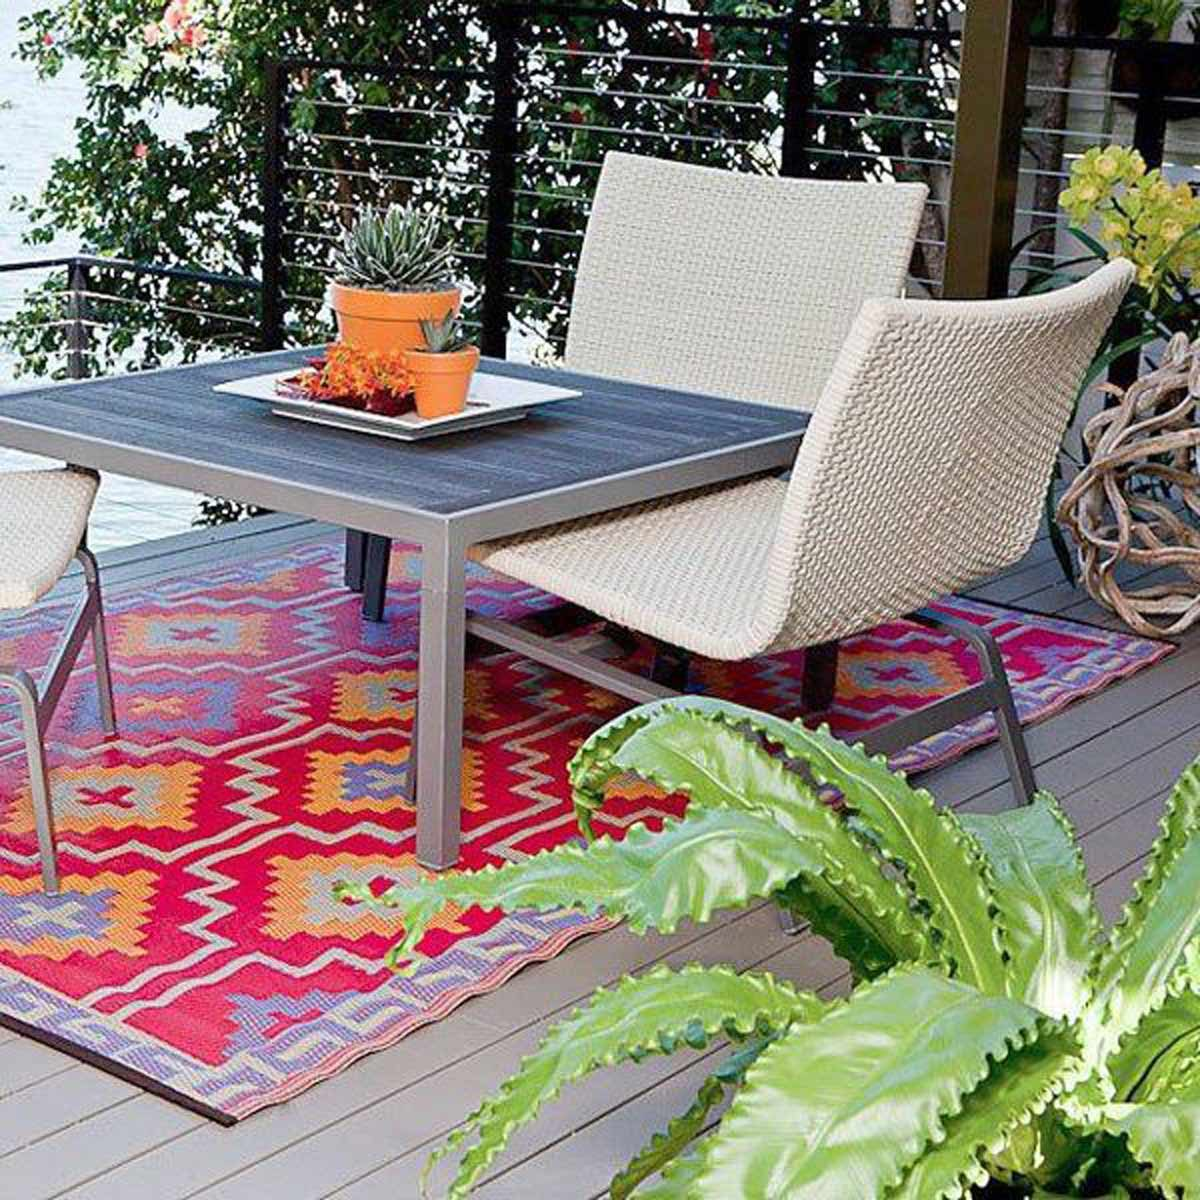 10 Best Small Patio Ideas The Family Handyman